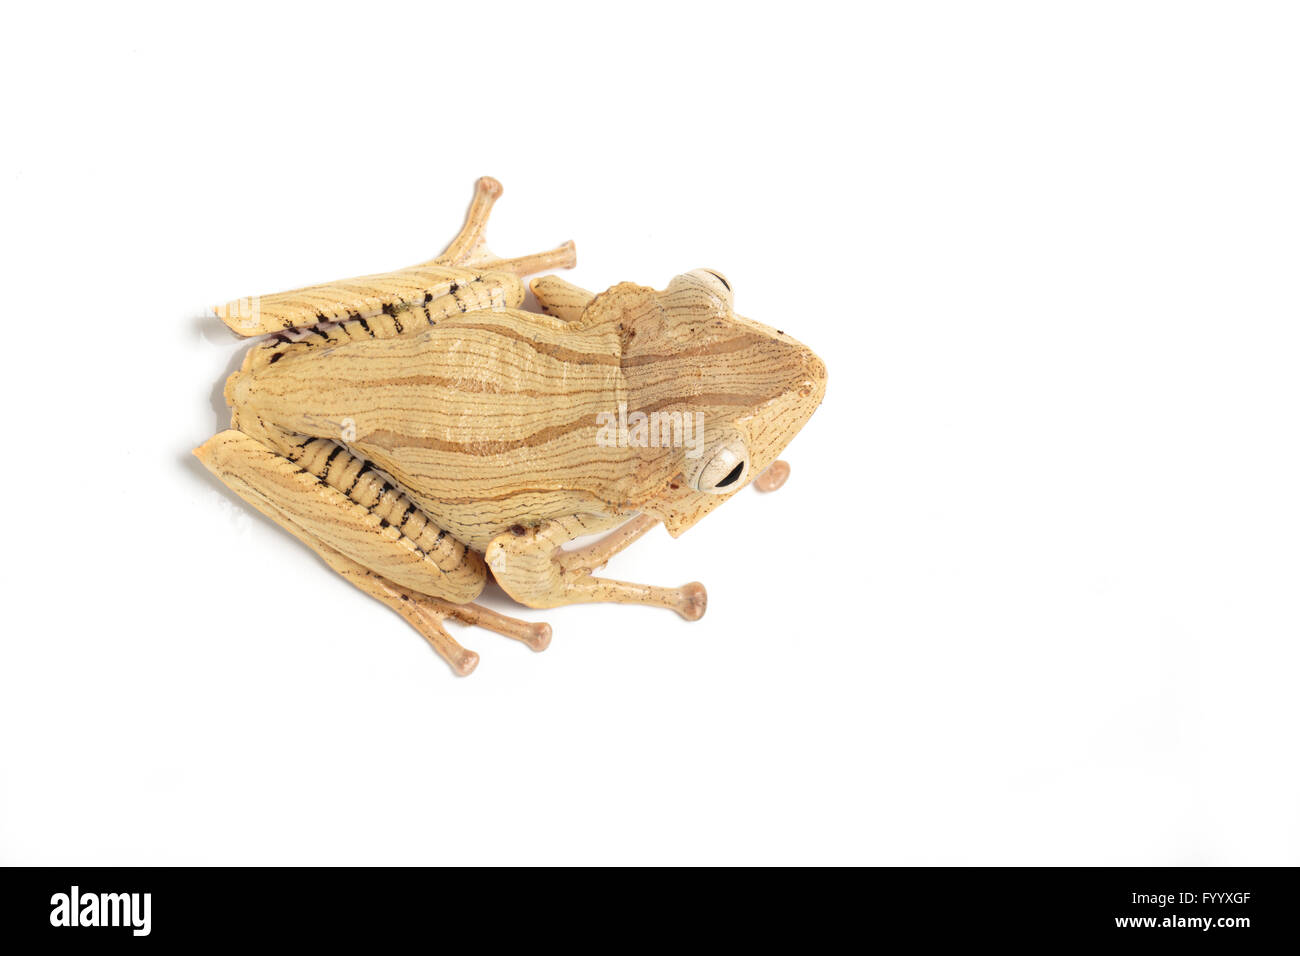 File-eared Tree Frog, Polypedates otophilus, a member of the Rhacophoridae family SE Asia (captive) - Stock Image